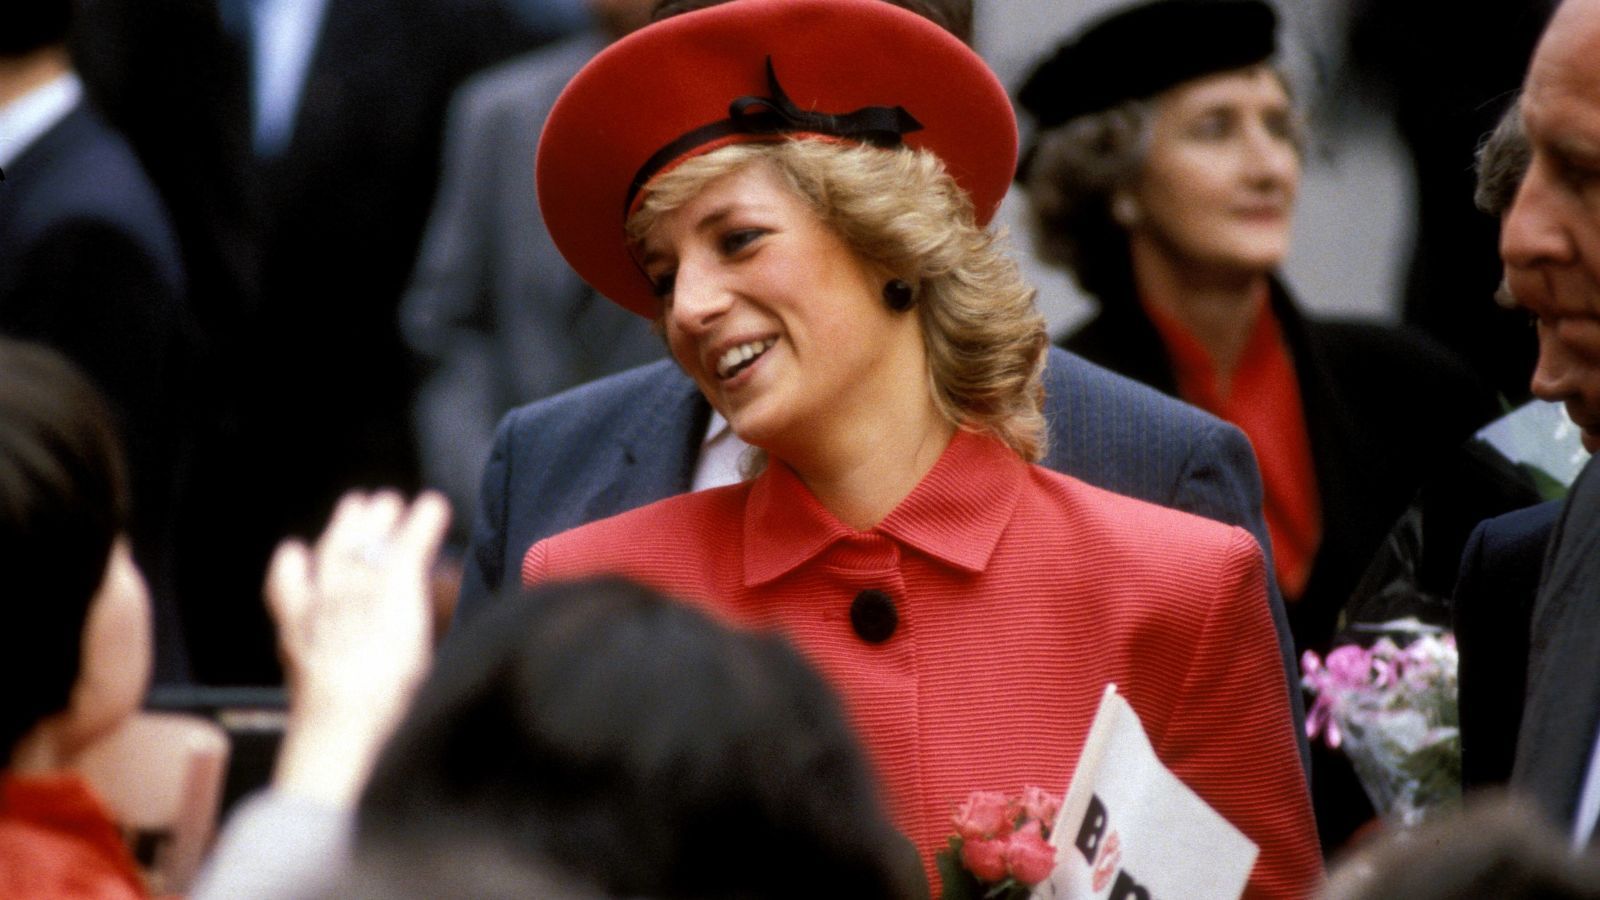 Diana Documentary on 2022